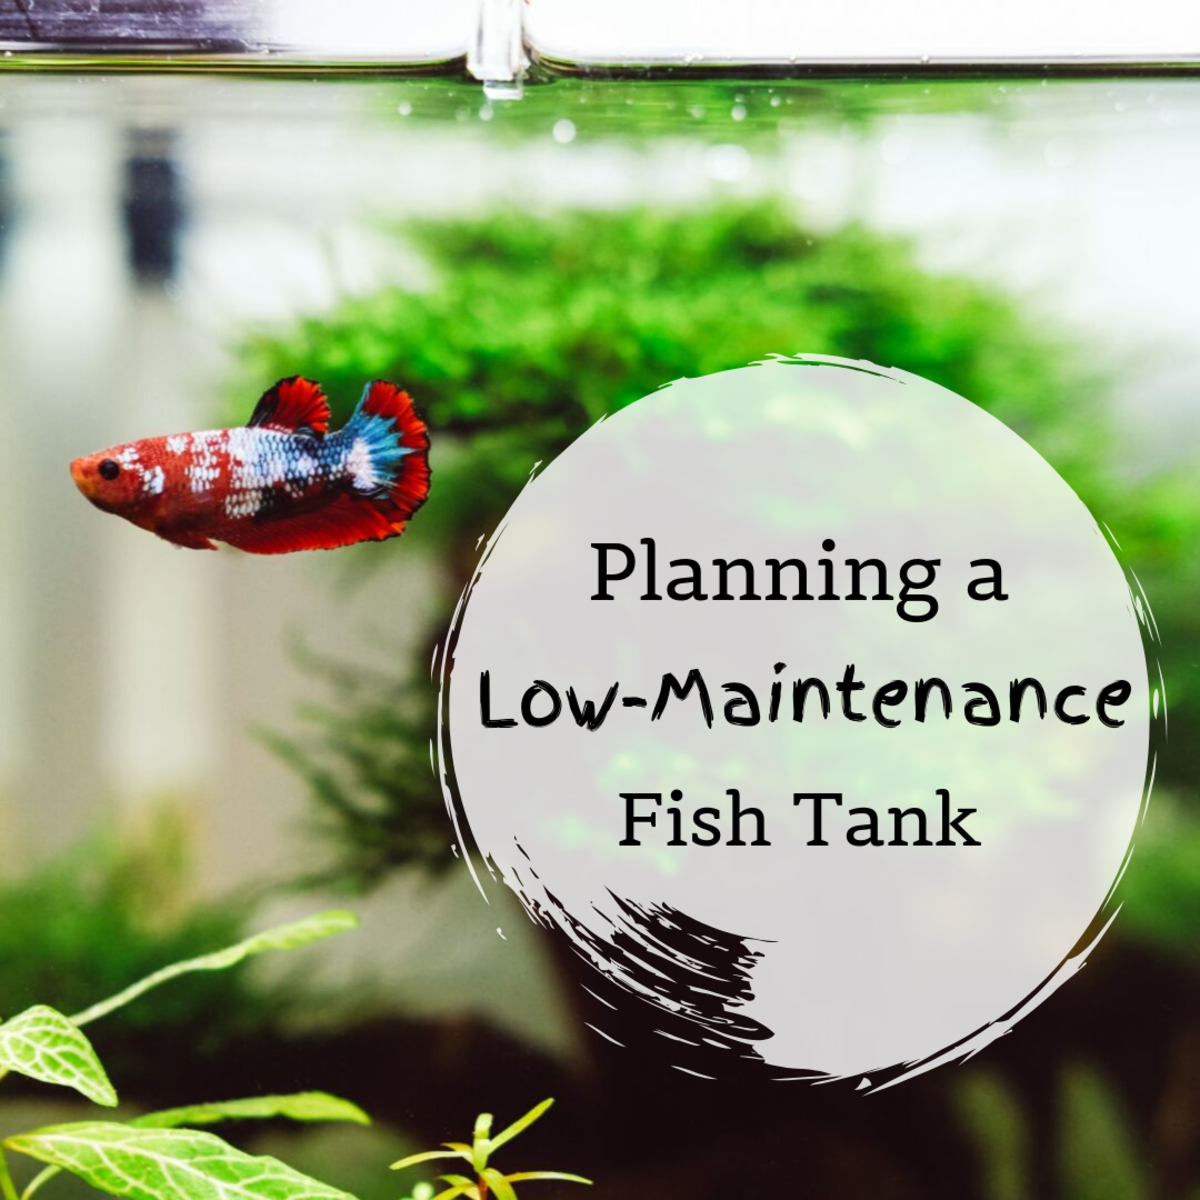 Tips for a Low-Maintenance Fish Tank